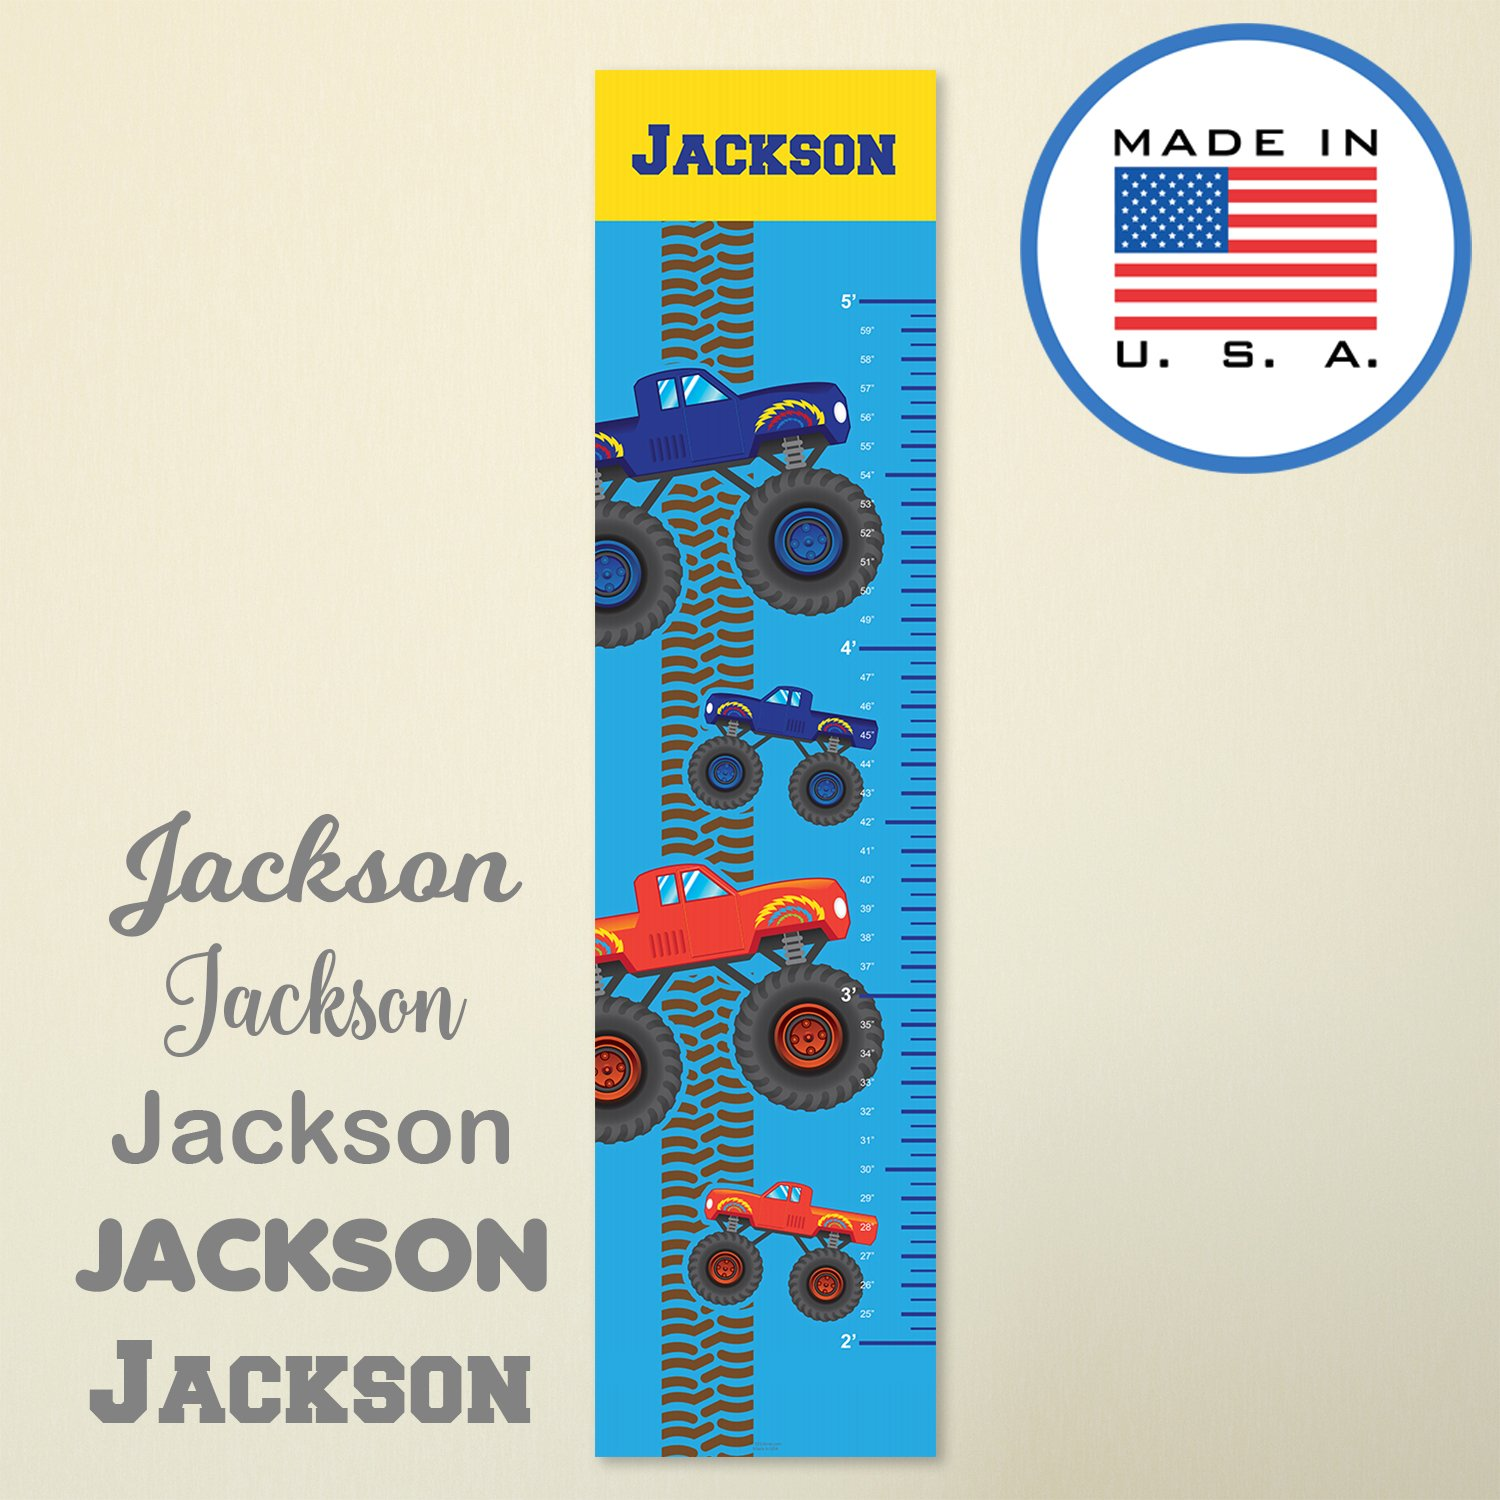 321Done Personalized Hanging Growth Chart Monster Trucks with Name, Kids Height Ruler Vinyl Banner, Boys Nursery Wall Decor, Red Blue Truck, Made in USA